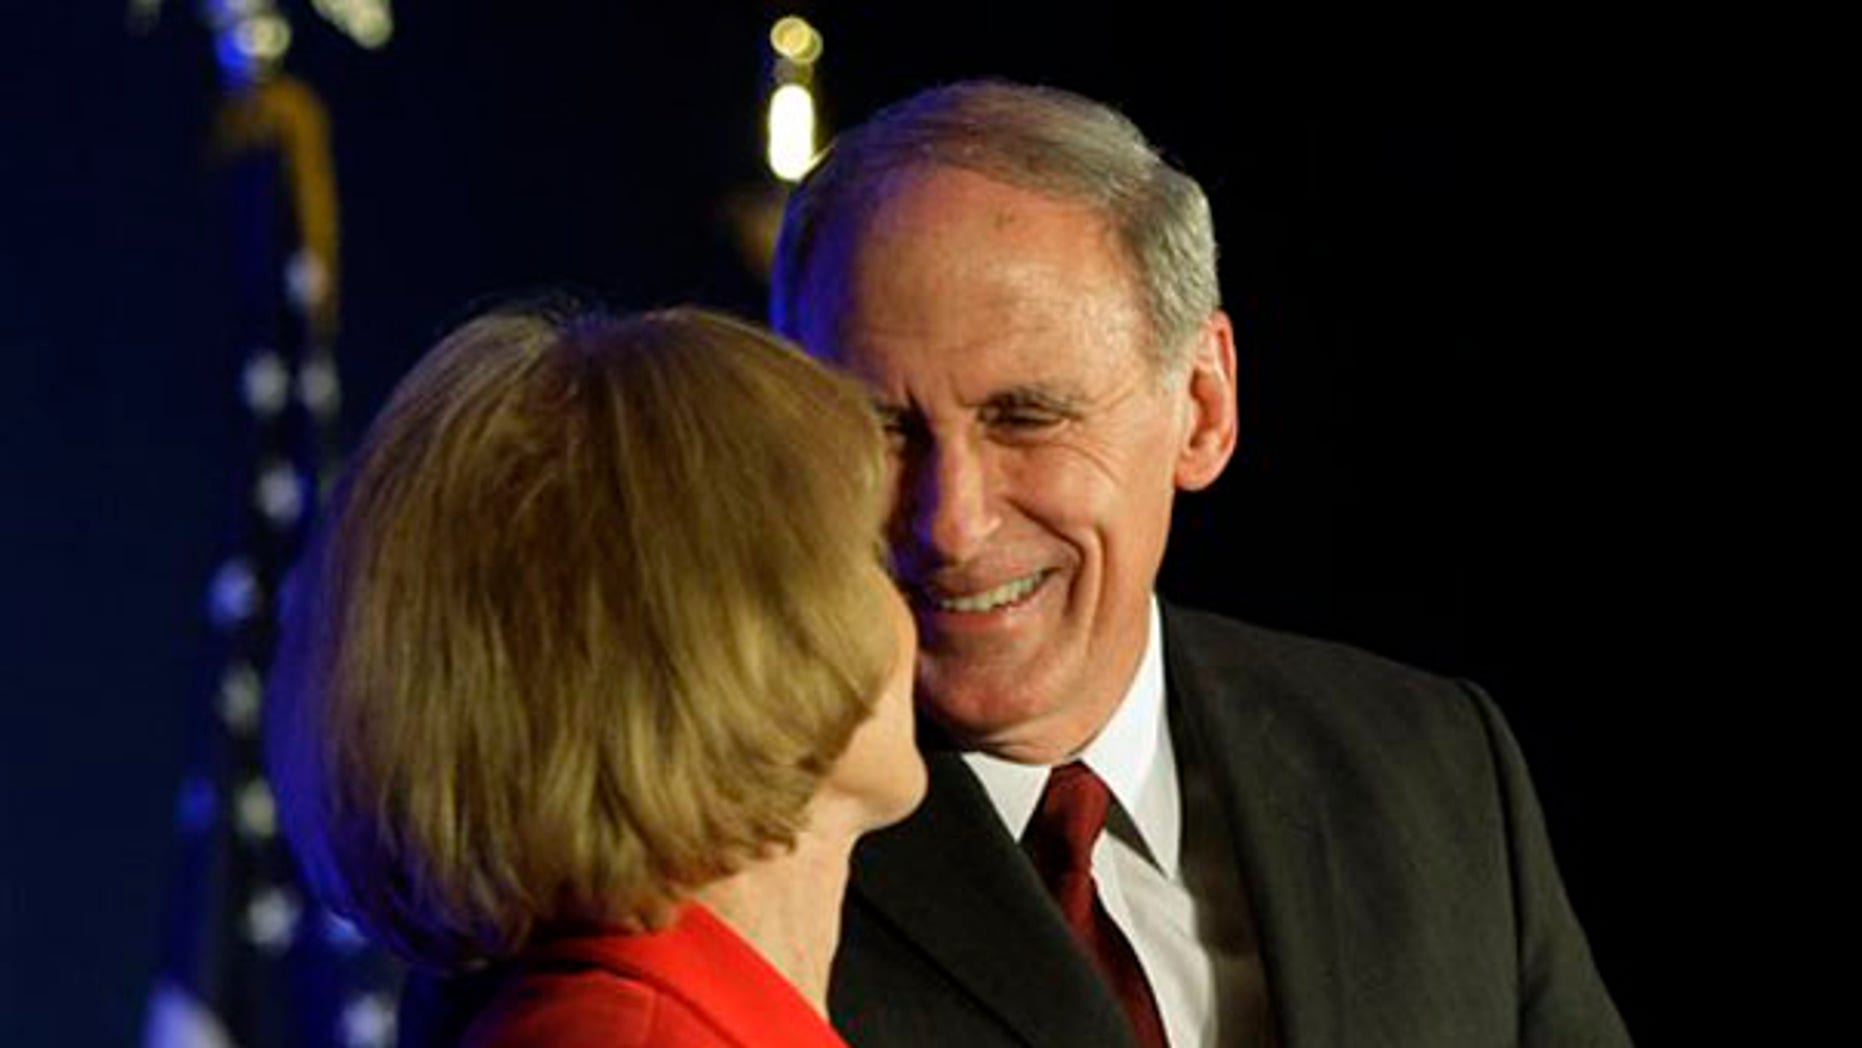 Sen. Dan Coats is greeted by his wife, Marsh, in Indianapolis.